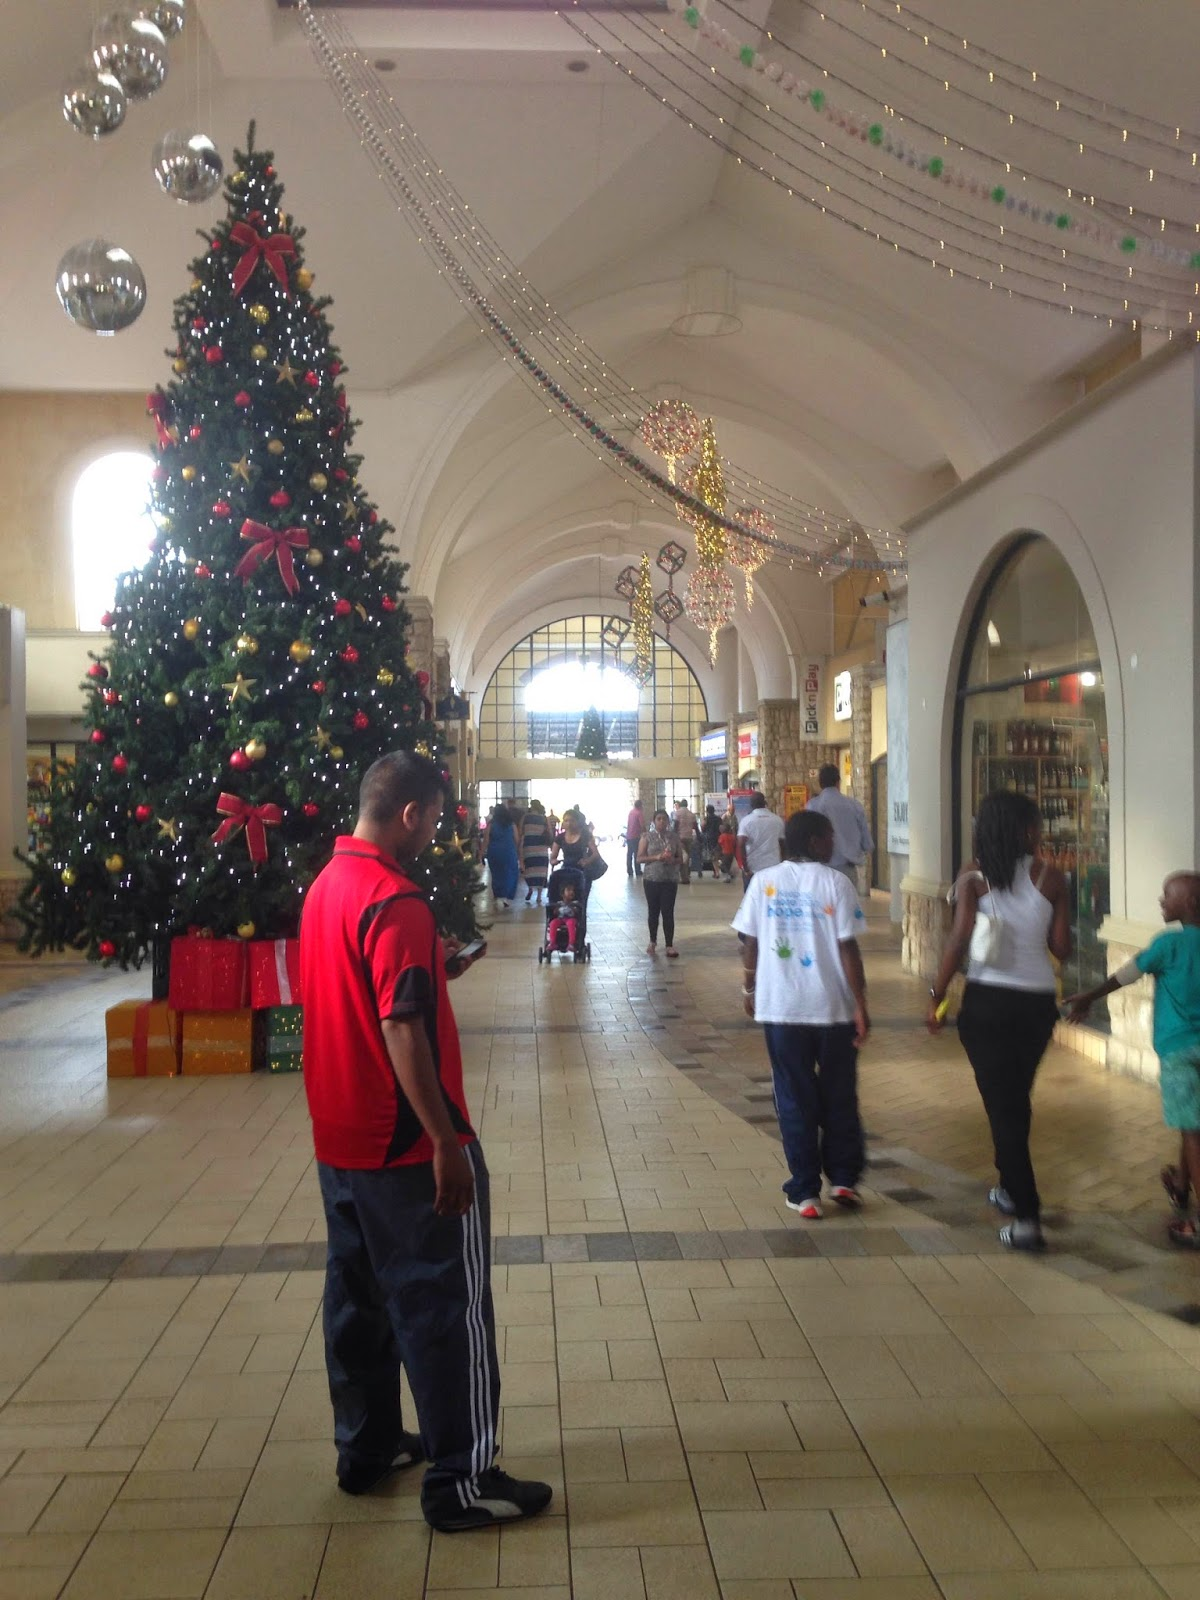 Christmas In Africa Traditions.Joburg Journey Christmas Traditions In South Africa